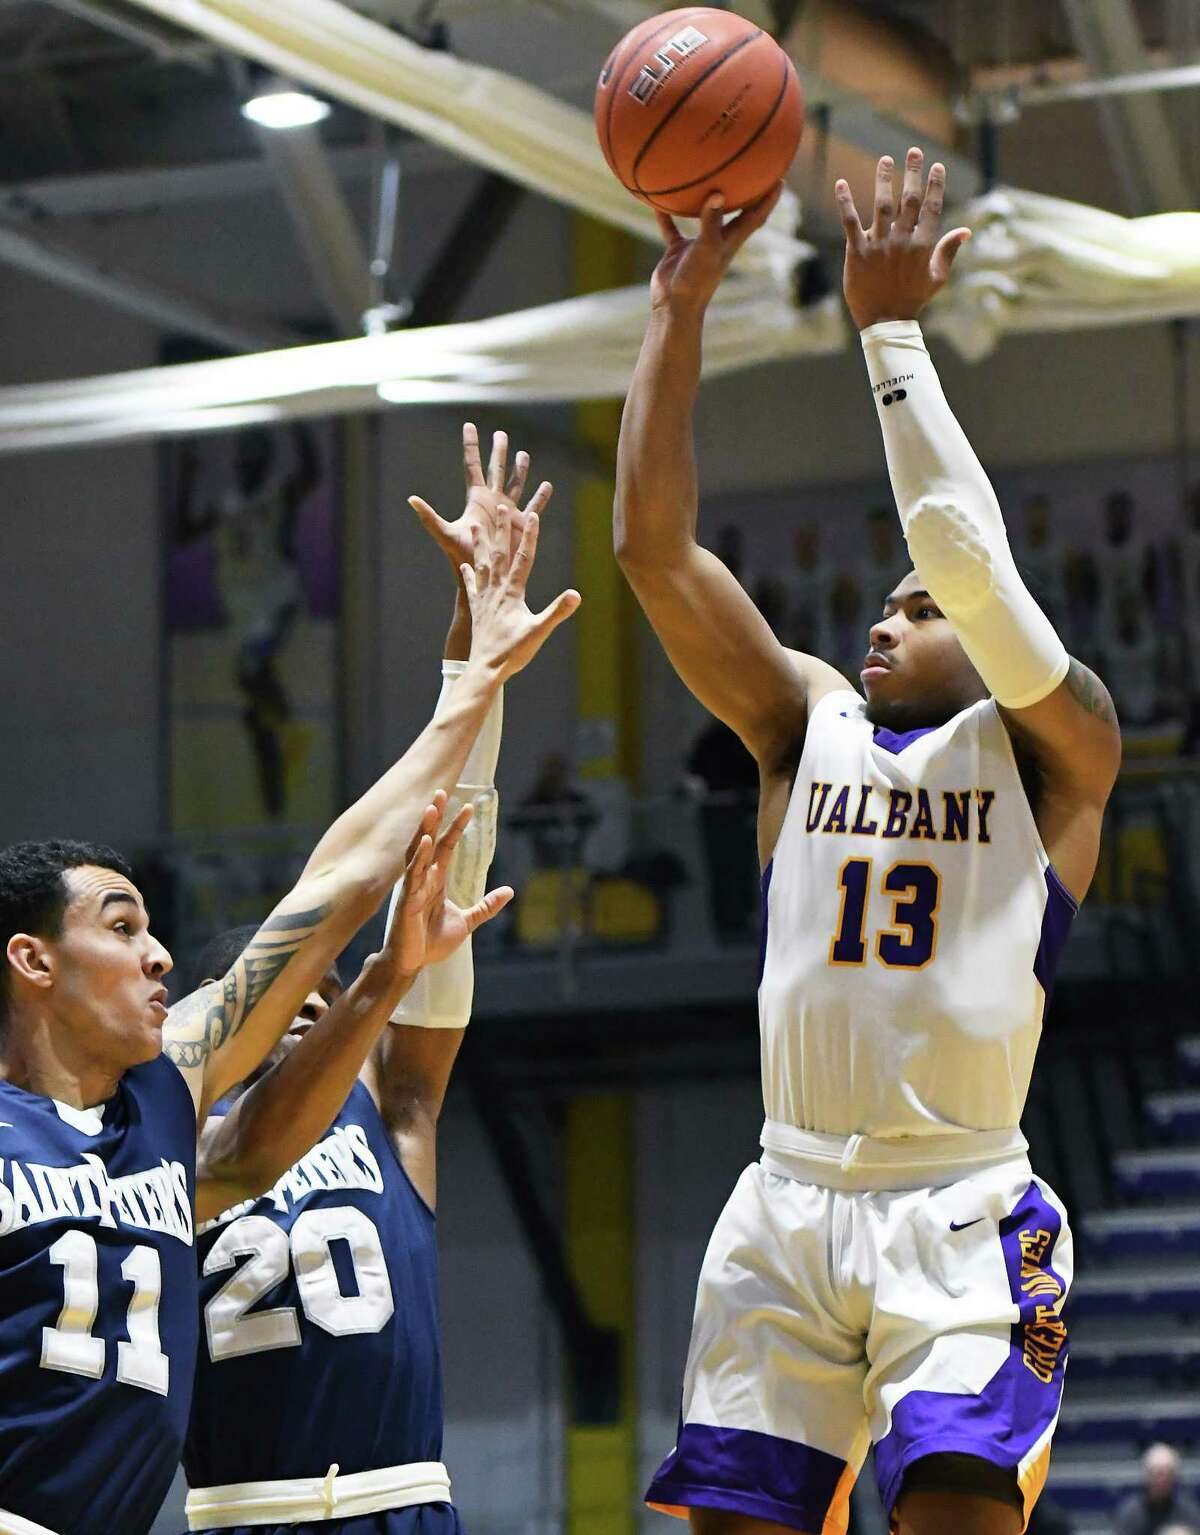 UAlbany's #13 David Nichols, right, gets a shot past Saint Peter's defenders #20 Chazz Patterson and #11 Nnamdi Enechionyia, left, during their CIT Tournament game Thursday March 16, 2017 in Albany, NY. (John Carl D'Annibale / Times Union) ORG XMIT: MER2017031621410085